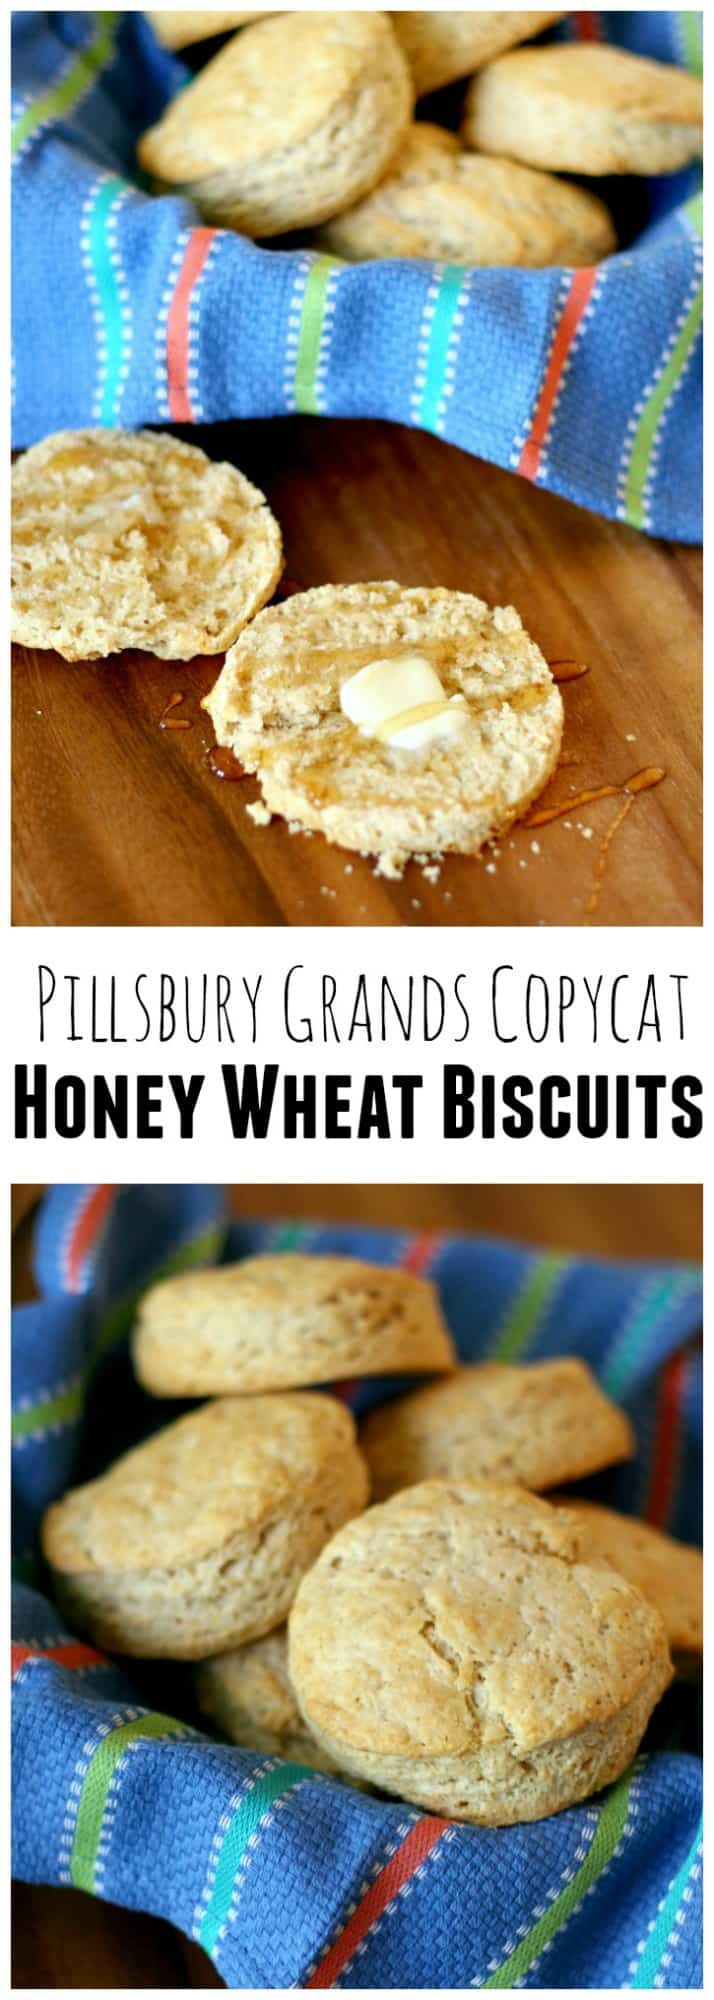 You'll never want to buy the blue tube again. Whip up this Grands copycat recipe in a matter of minutes and enjoy some delicious honey wheat biscuits.